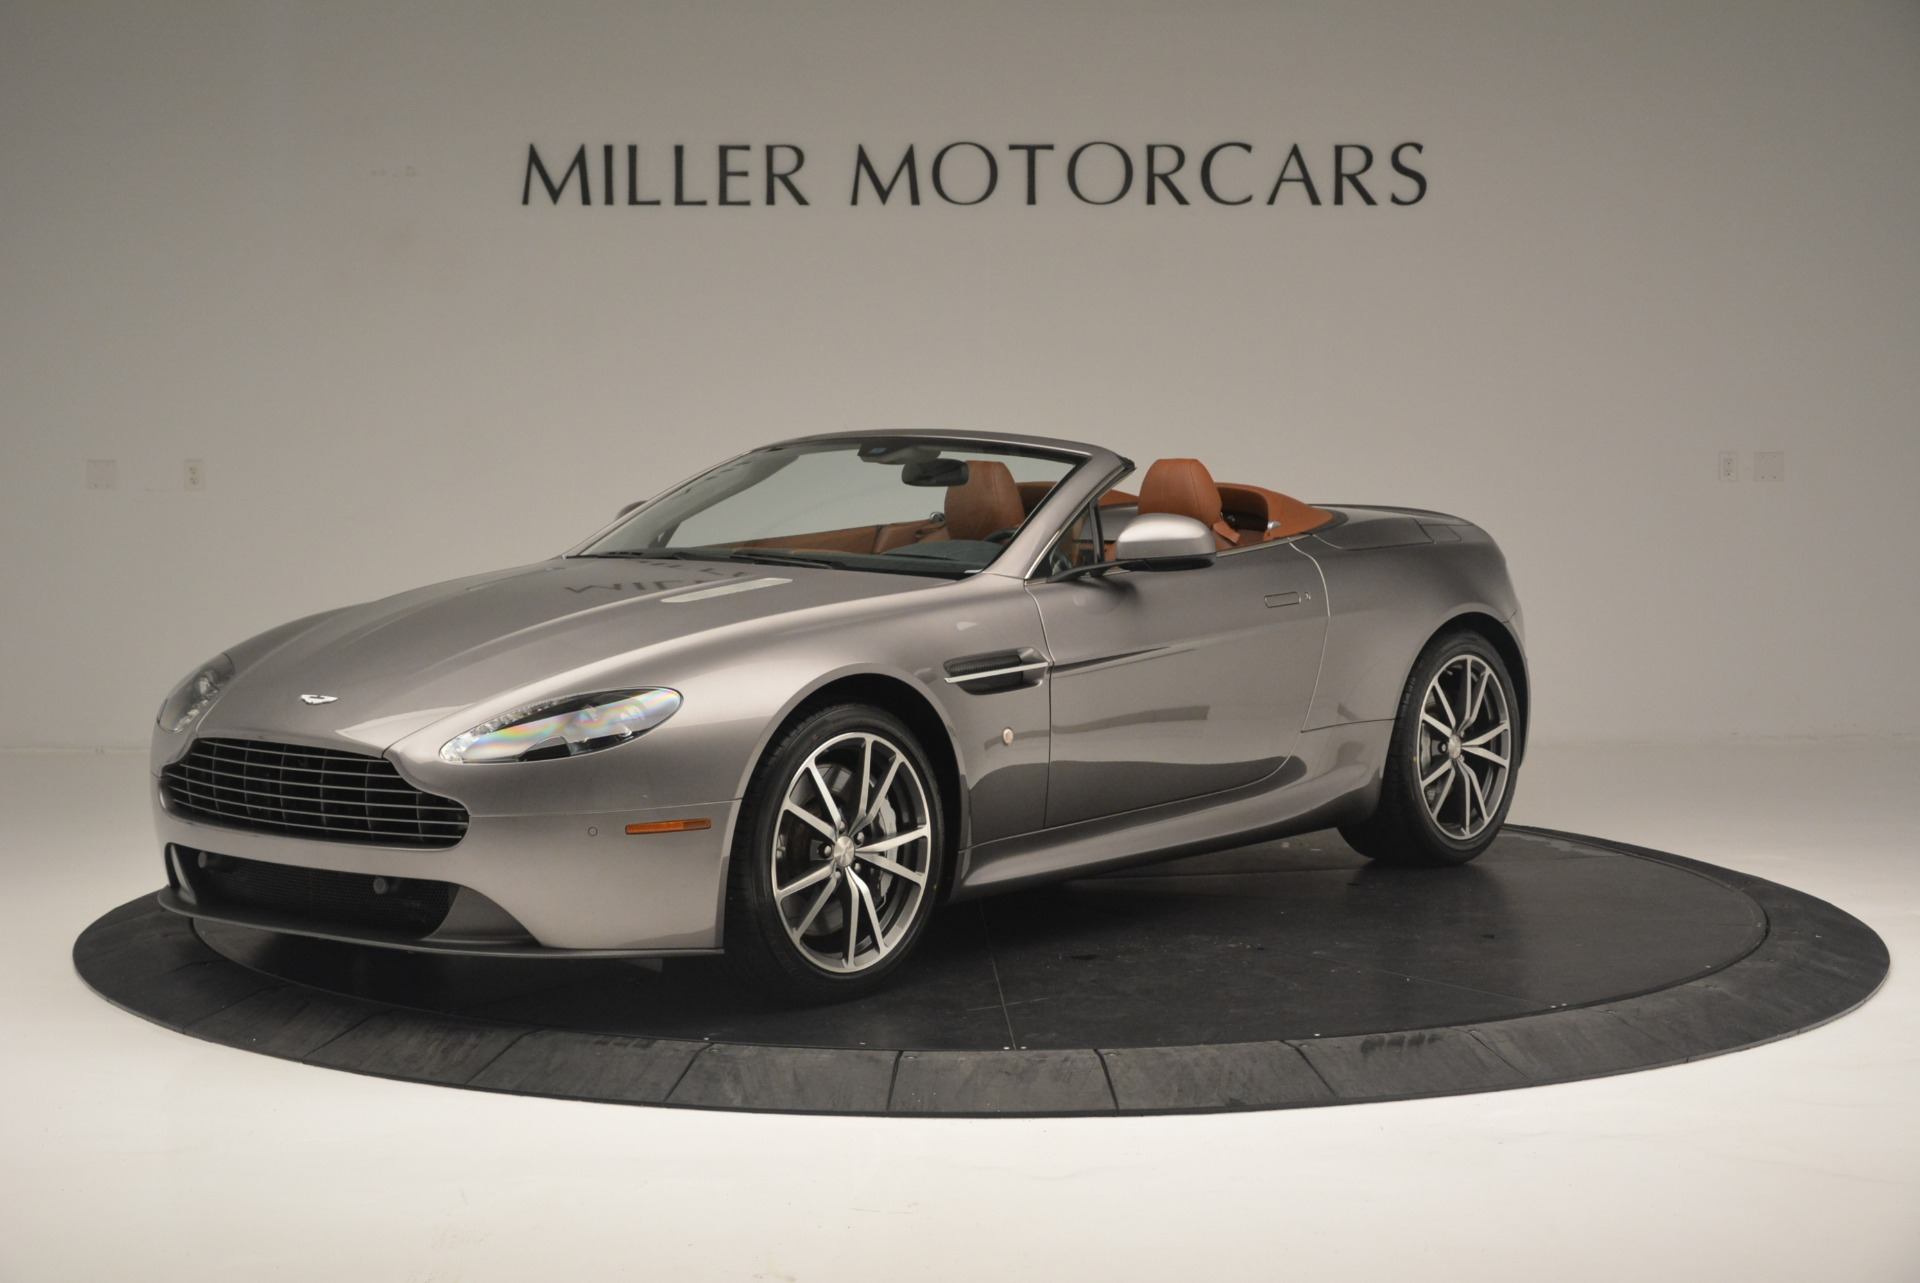 Used 2015 Aston Martin V8 Vantage Roadster for sale Sold at Bugatti of Greenwich in Greenwich CT 06830 1